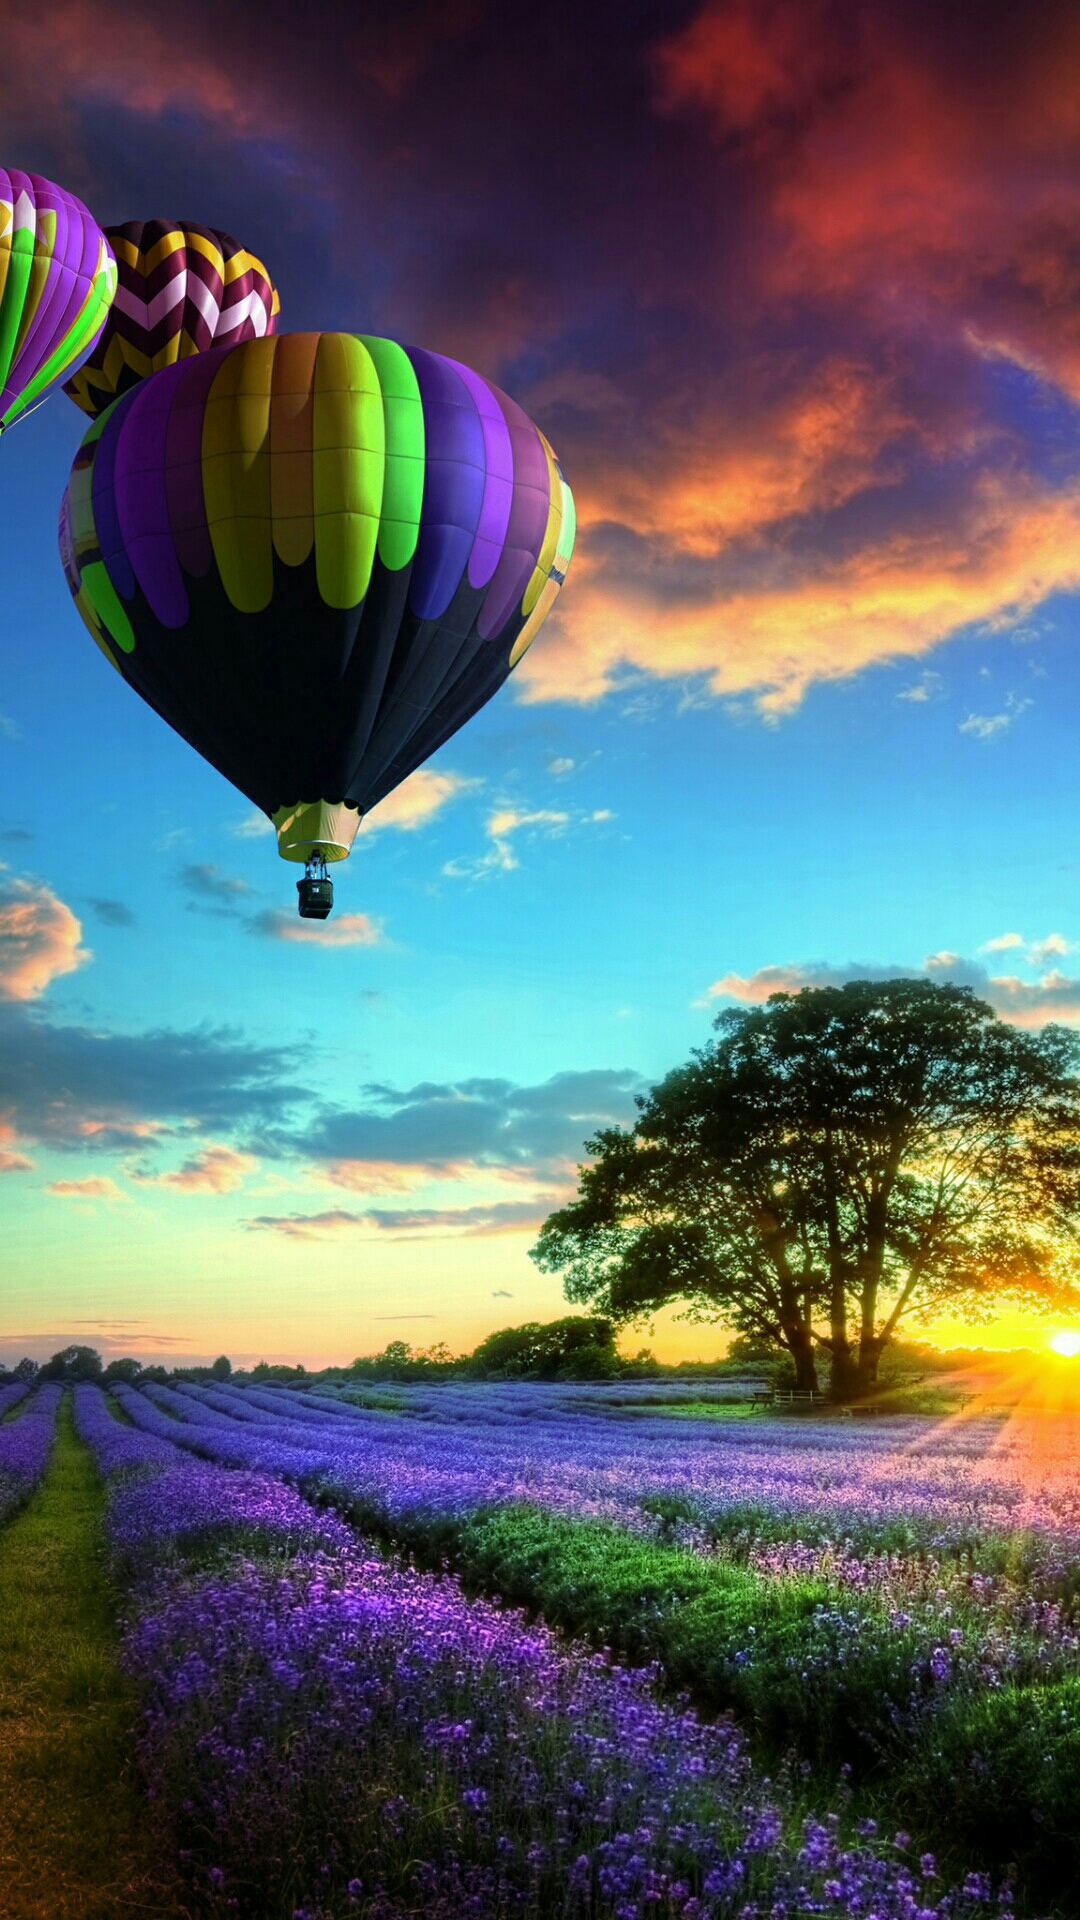 iPhone wallpaper balloon sunset Balloons